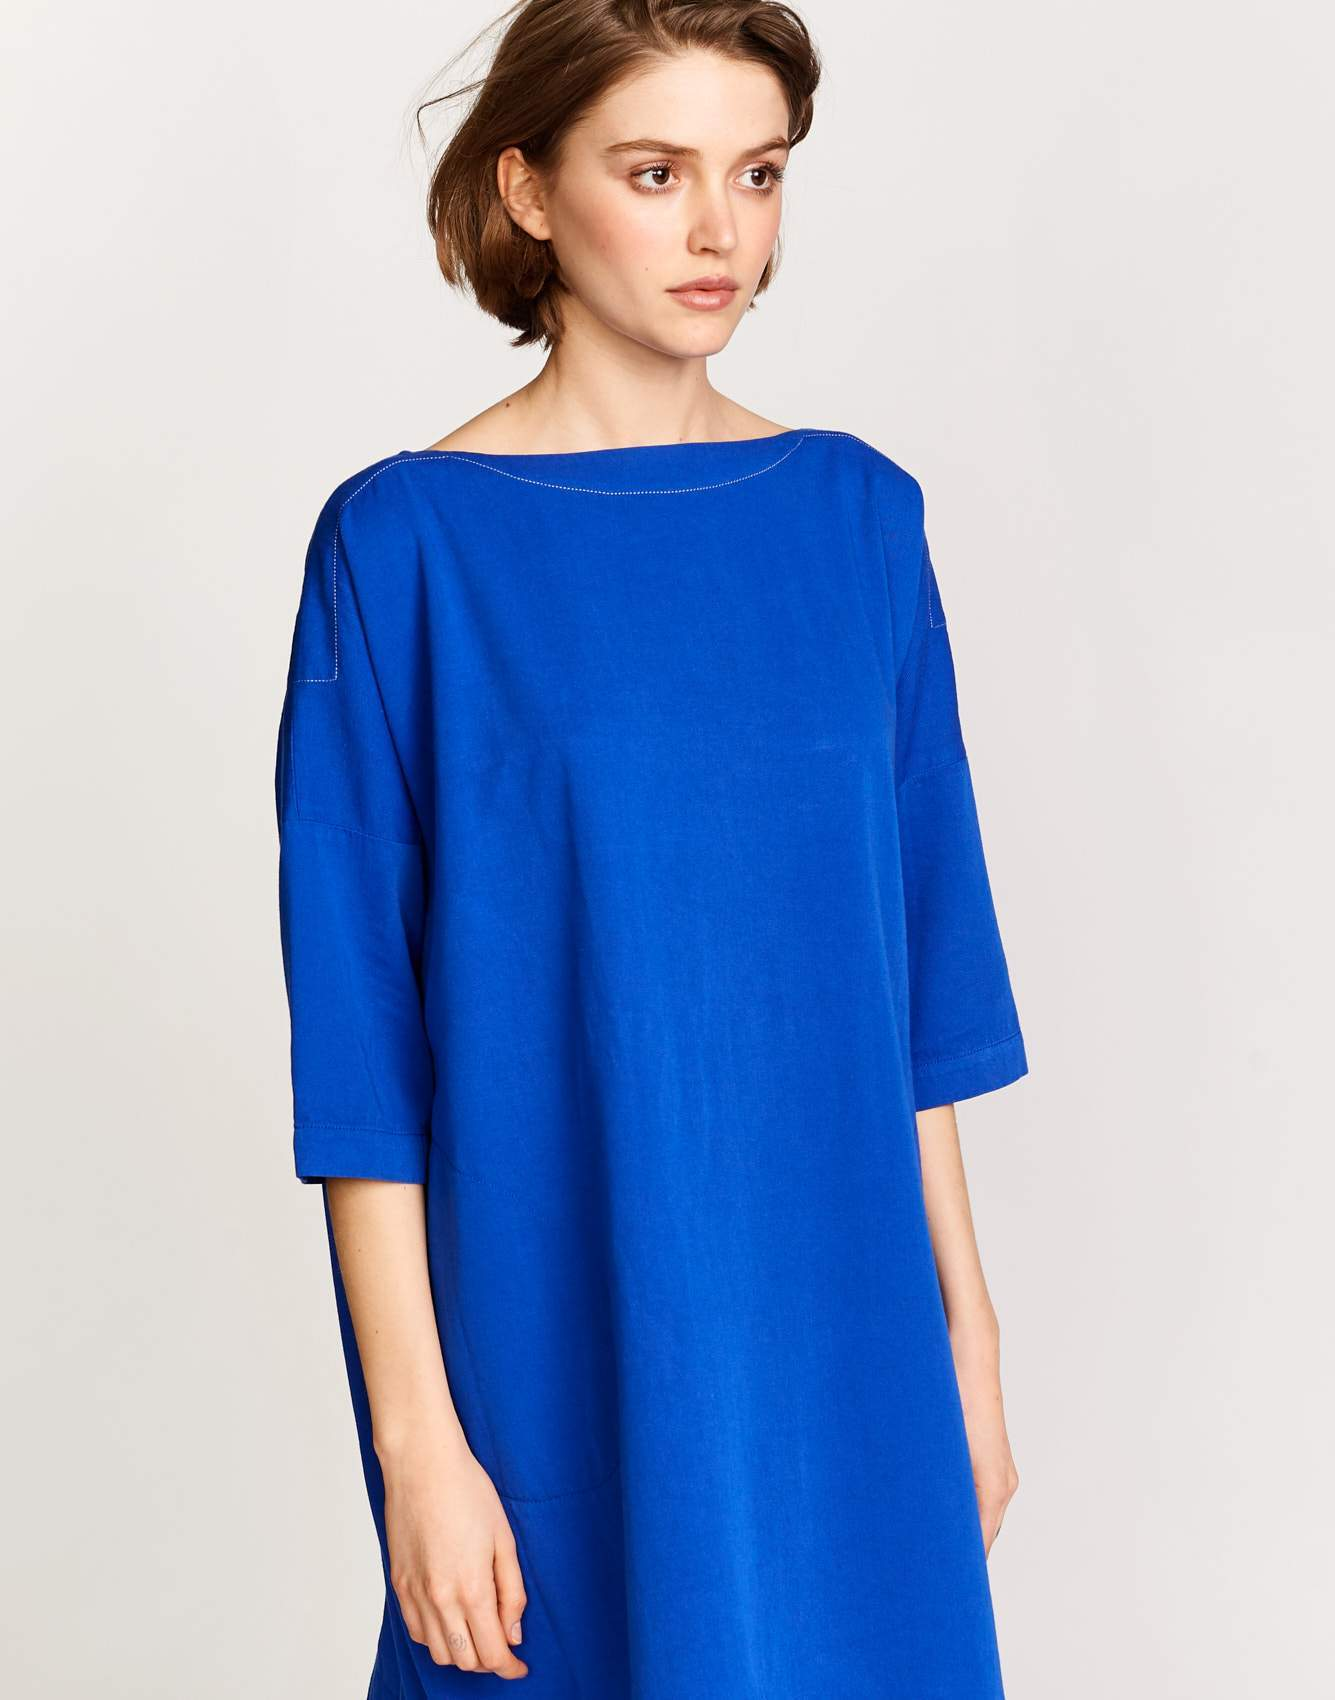 Bellerose oversized blue  cotton dress for women